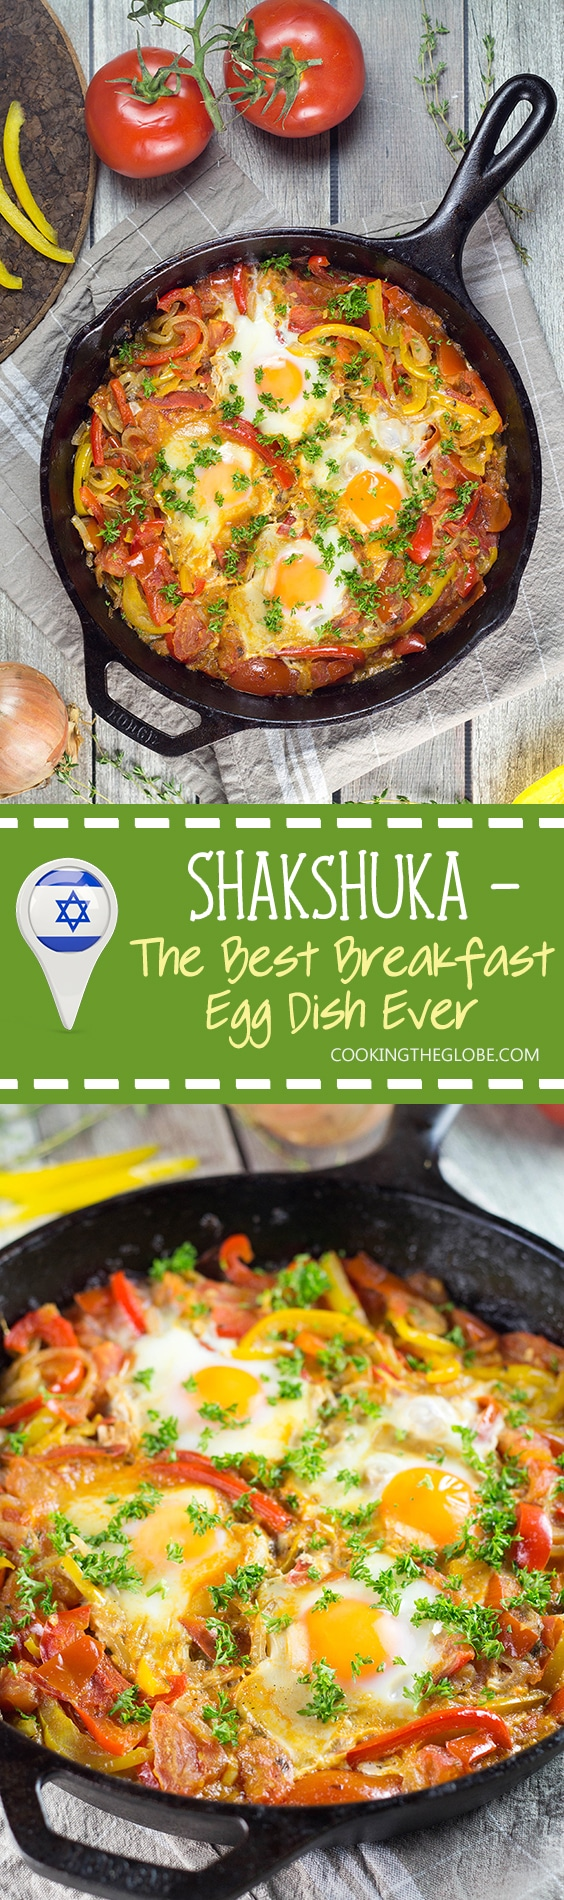 There are plenty of ways of cooking eggs, but nothing beats Shakshuka. This North African dish combines eggs with a fragrant tomato and bell pepper sauce! | cookingtheglobe.com